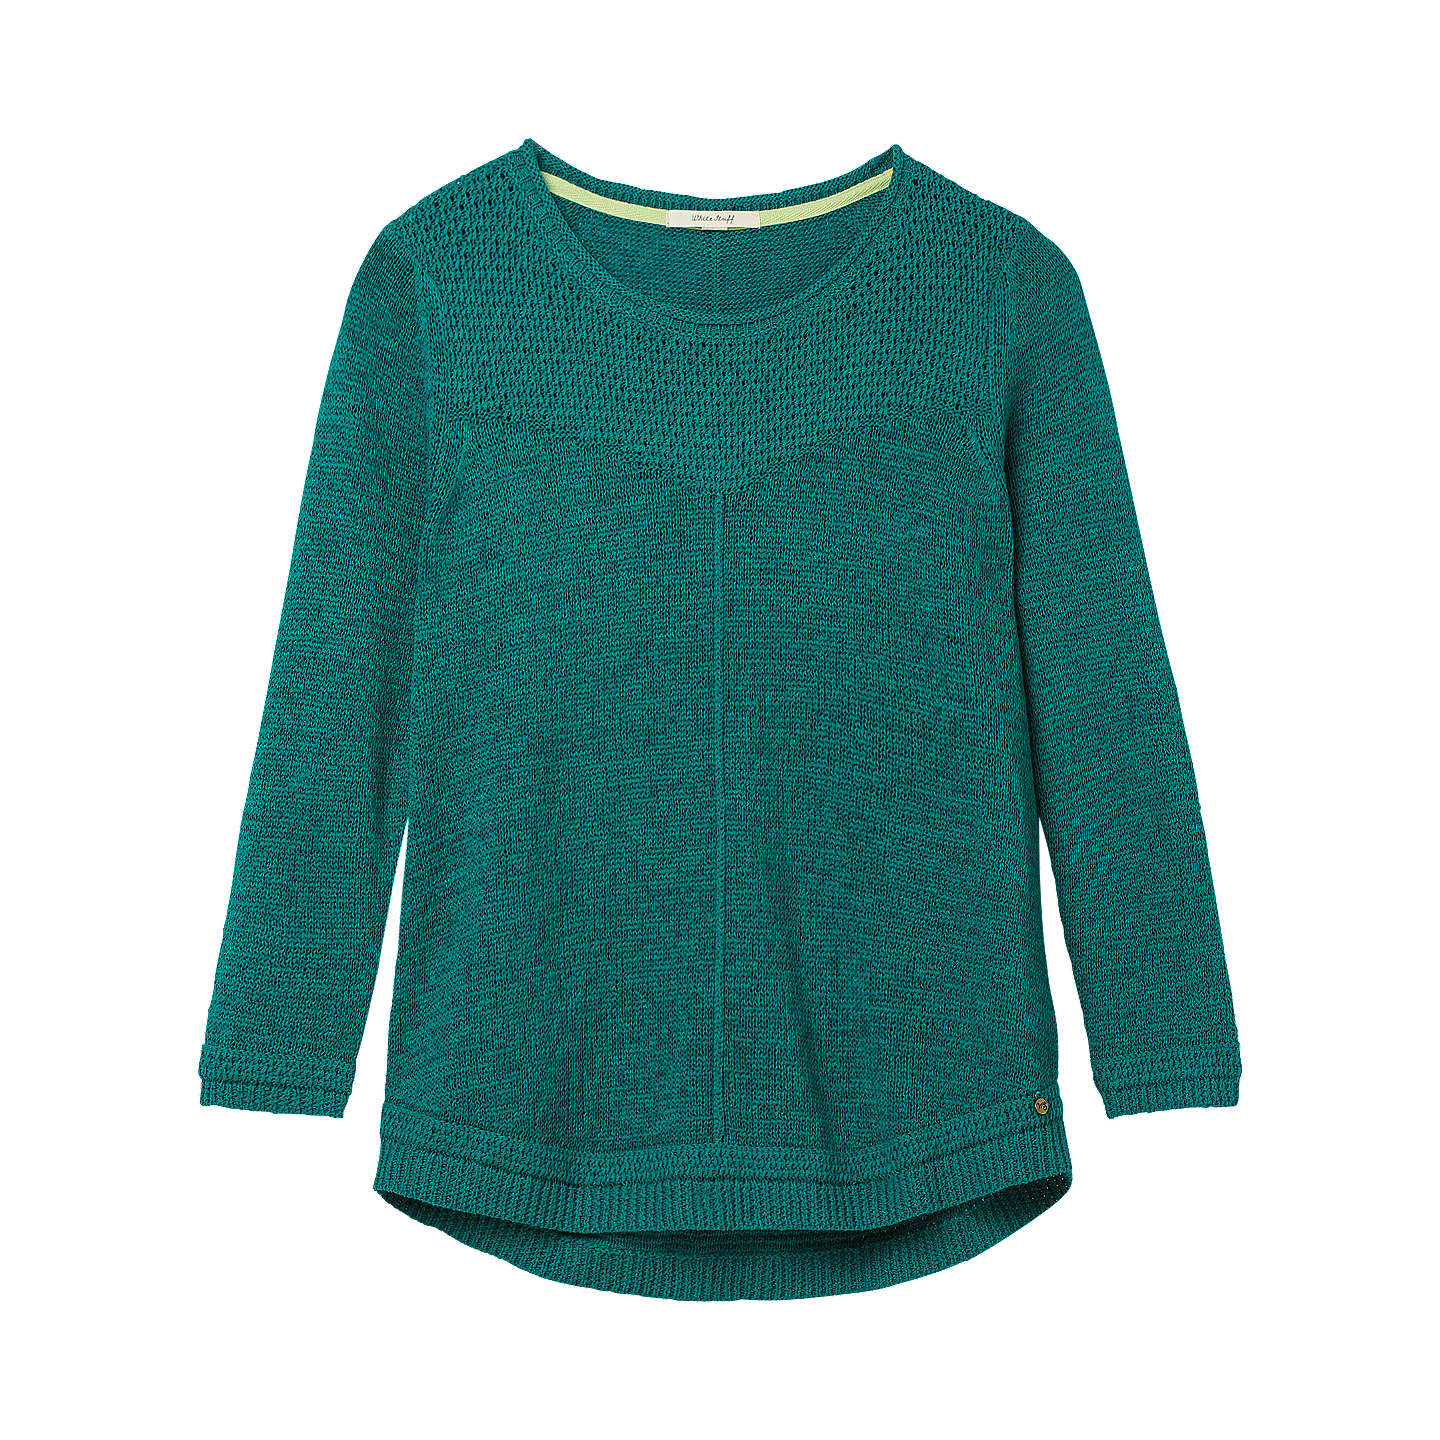 BuyWhite Stuff Gardinia Jumper, Garden Green, 6 Online at johnlewis.com